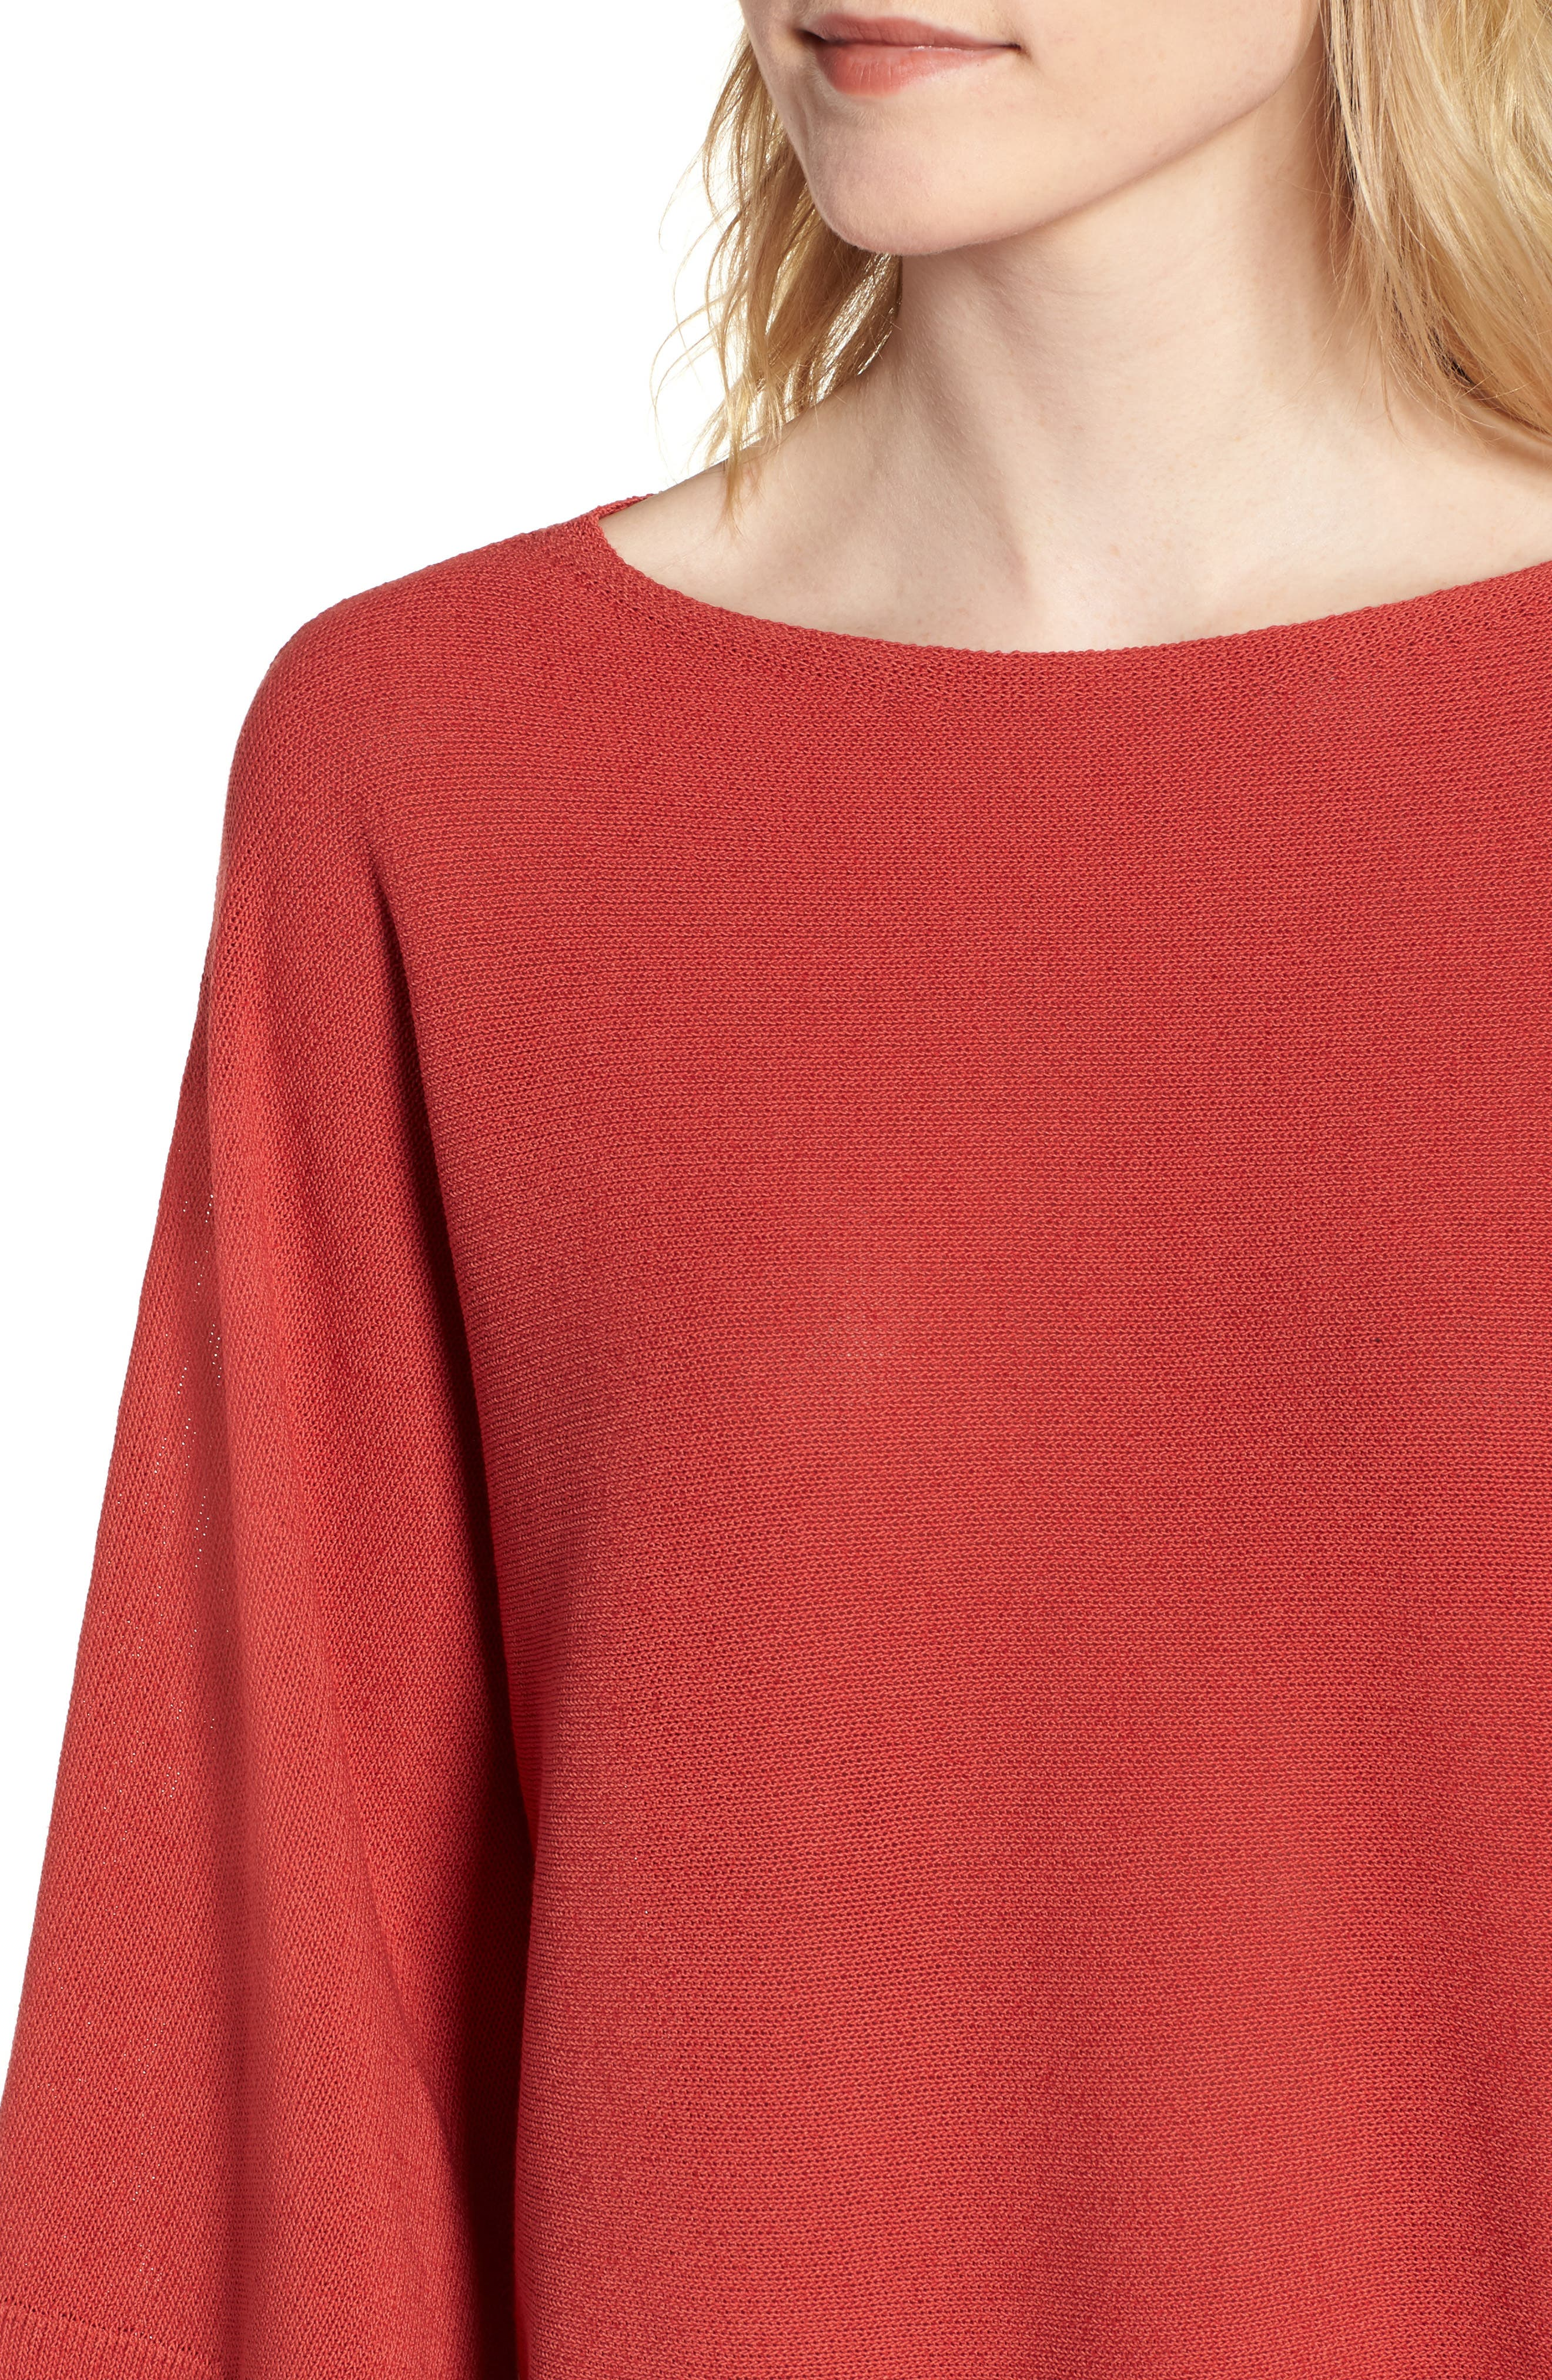 Organic Cotton Blend Sweater,                             Alternate thumbnail 17, color,